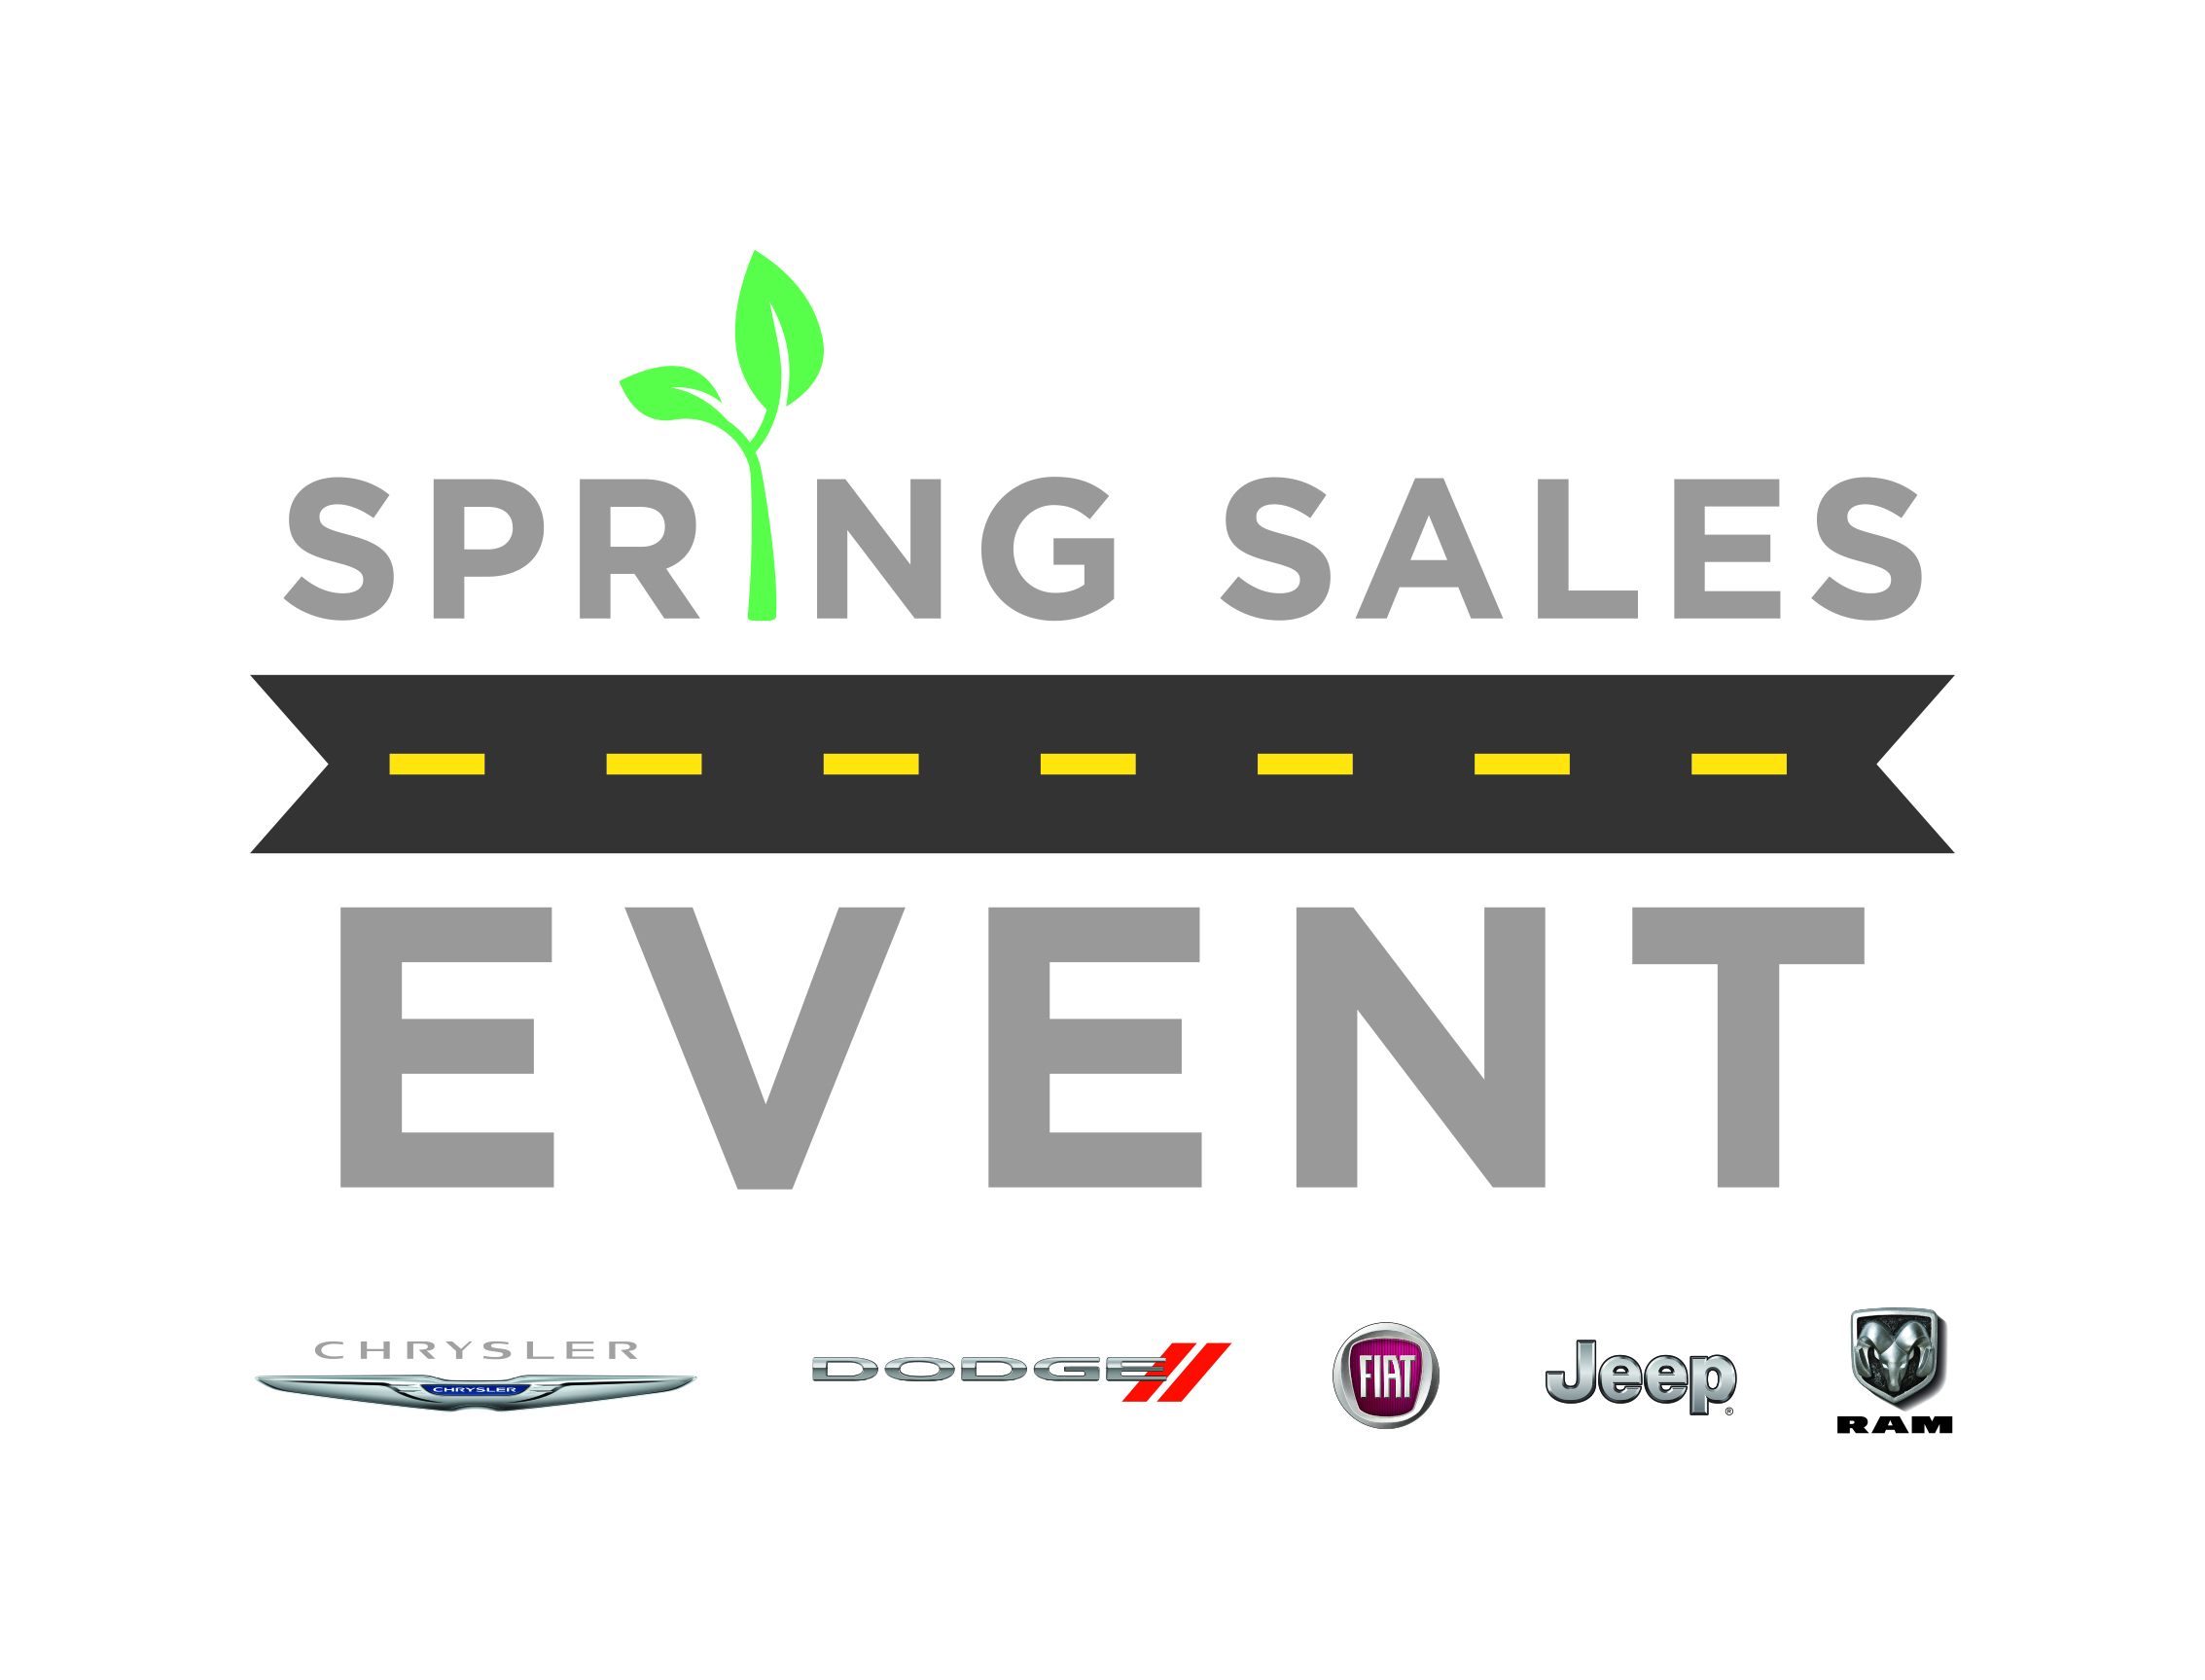 Spring Sales Event in Inverness, FL